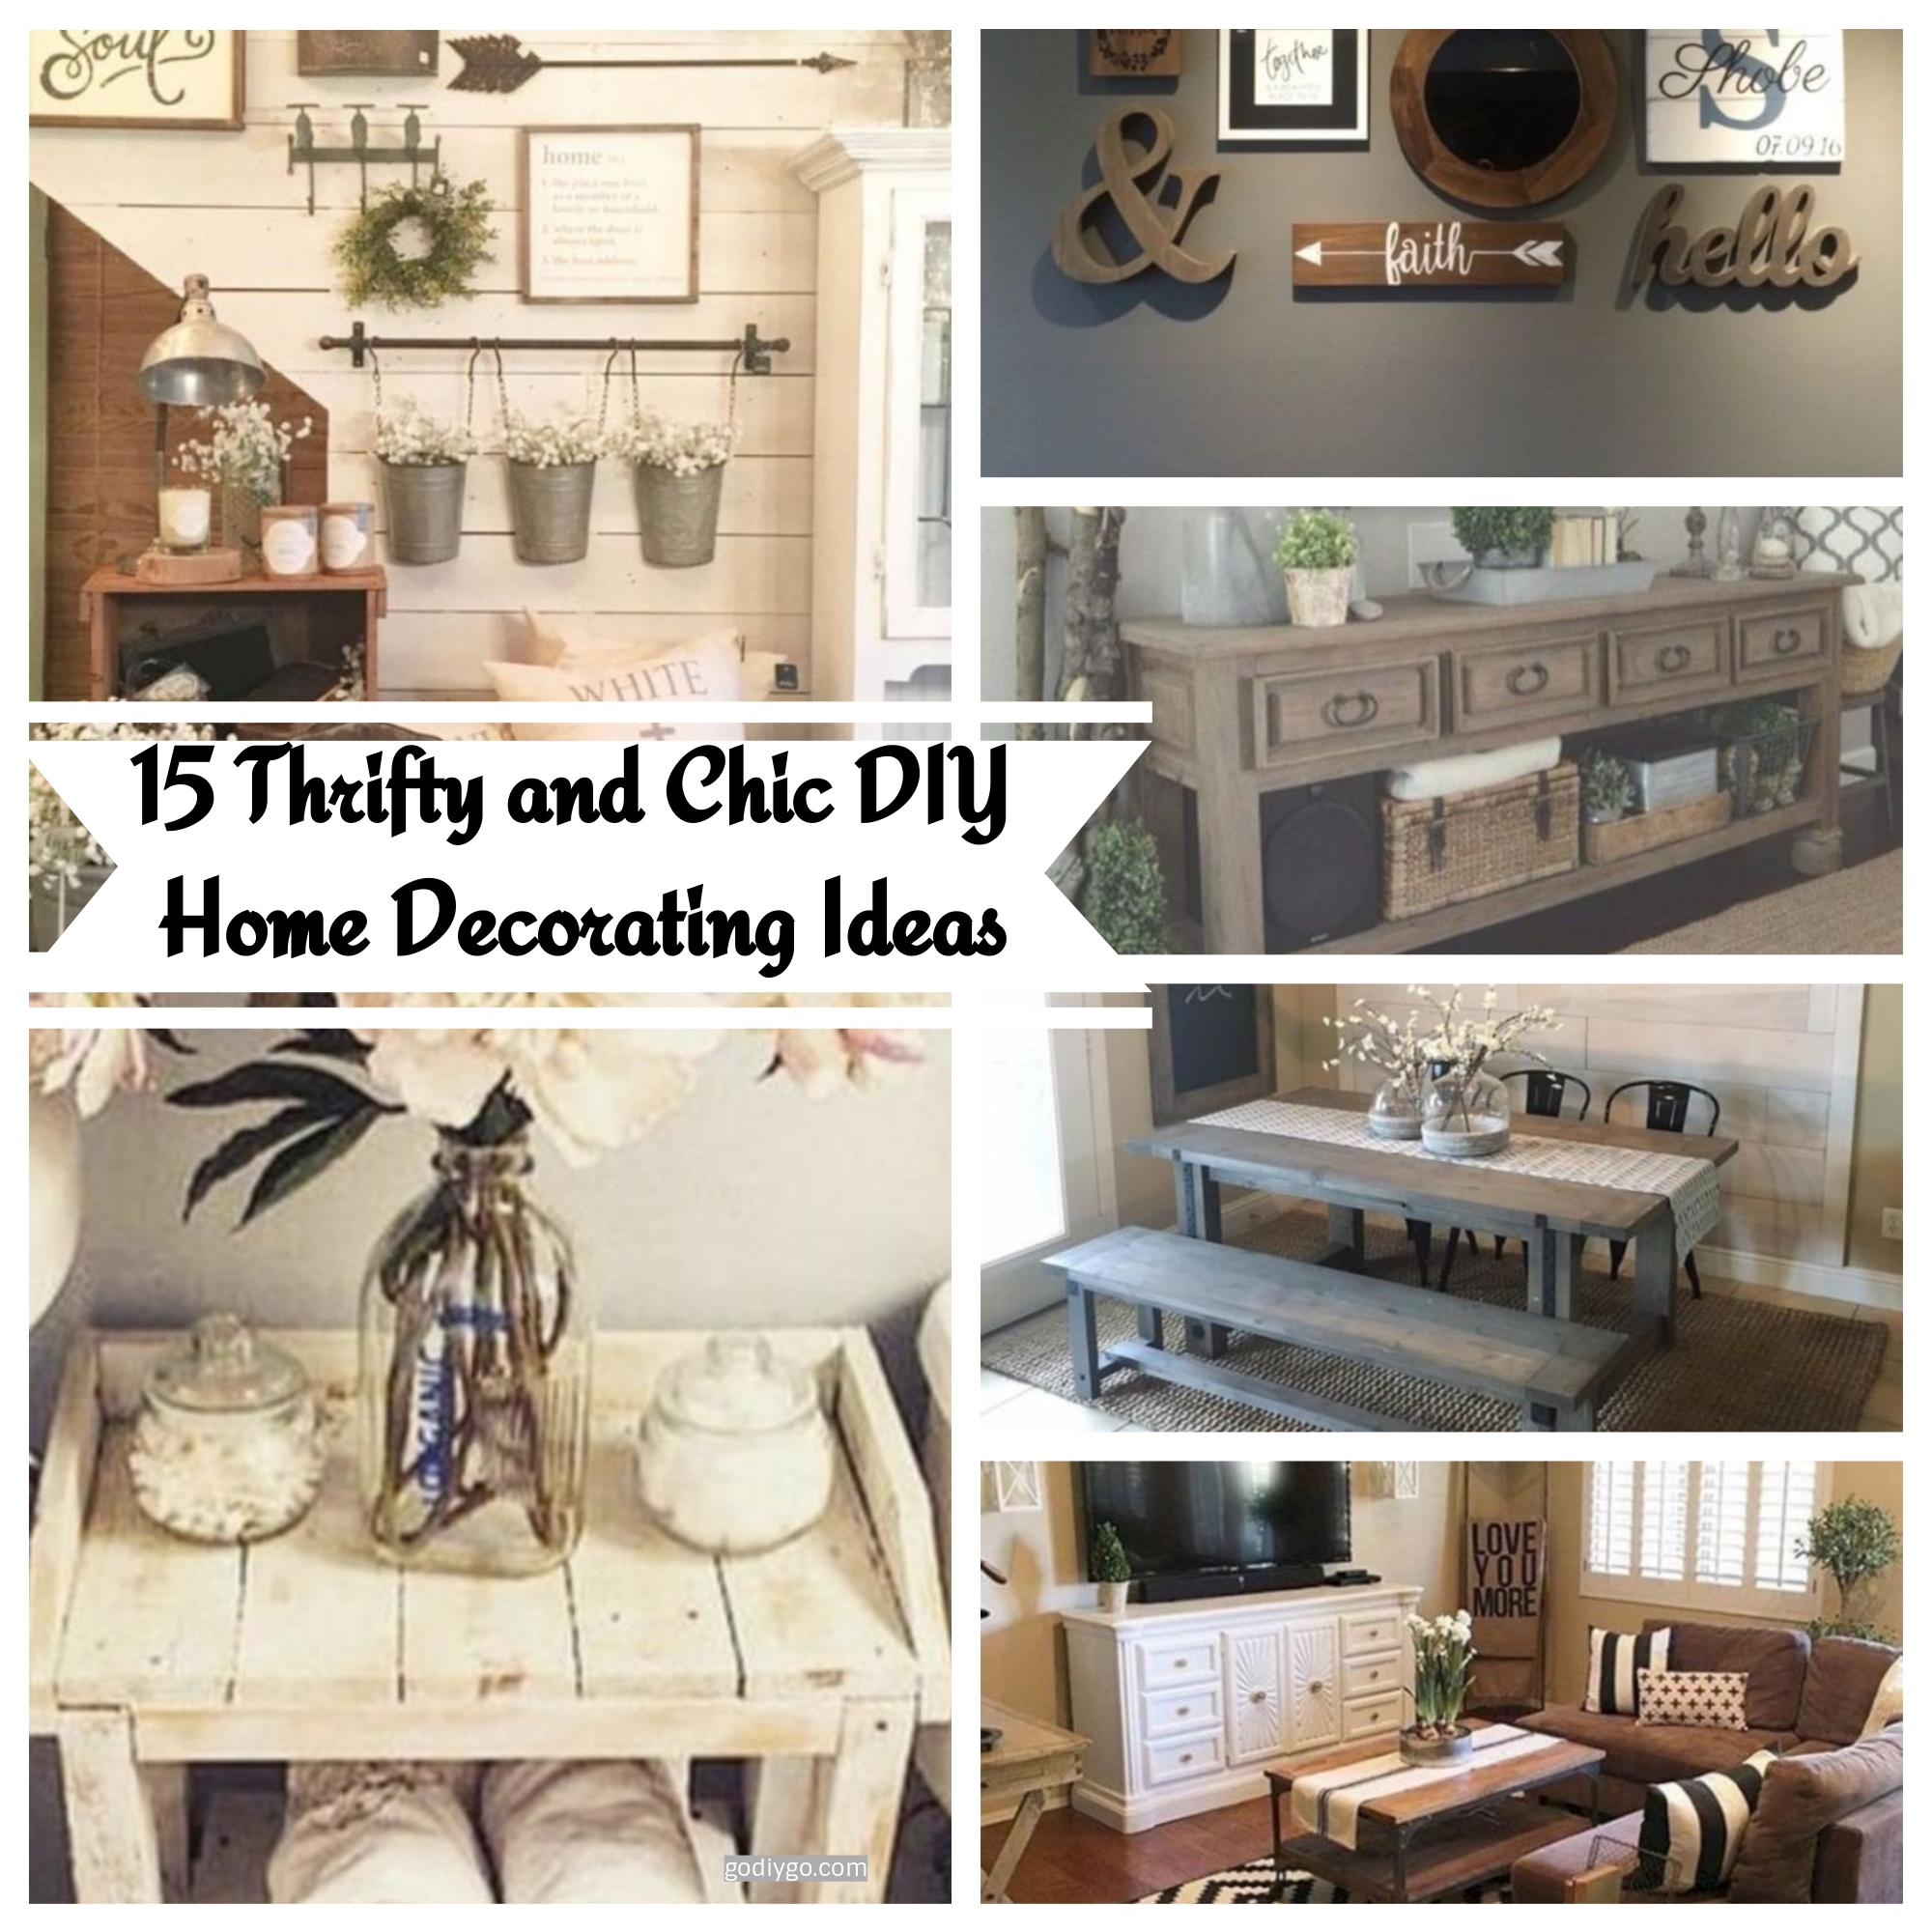 15 Thrifty And Chic DIY Home Decorating Ideas